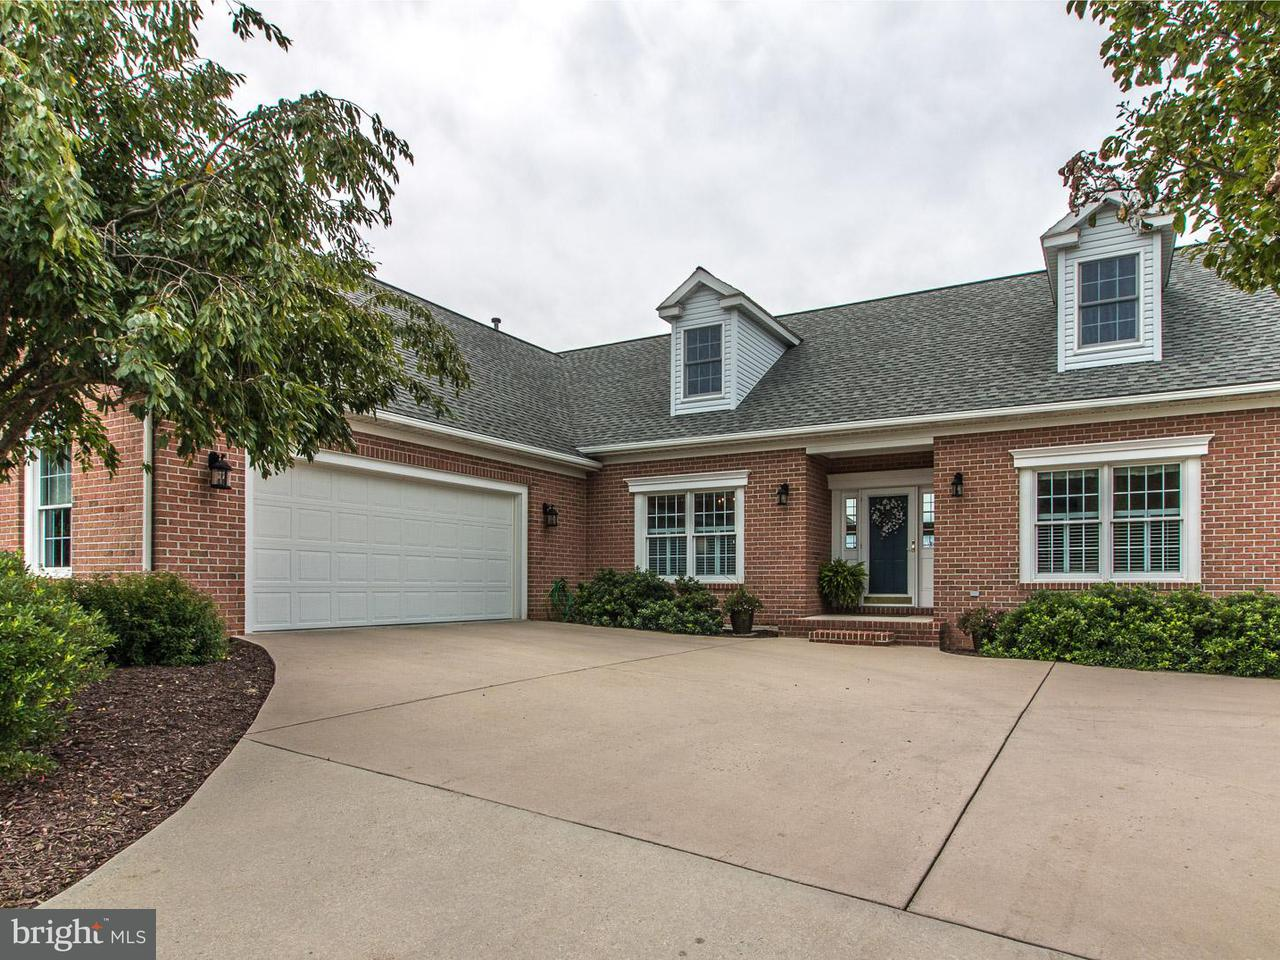 Additional photo for property listing at 6902 St Annes 6902 St Annes Fayetteville, Пенсильвания 17222 Соединенные Штаты